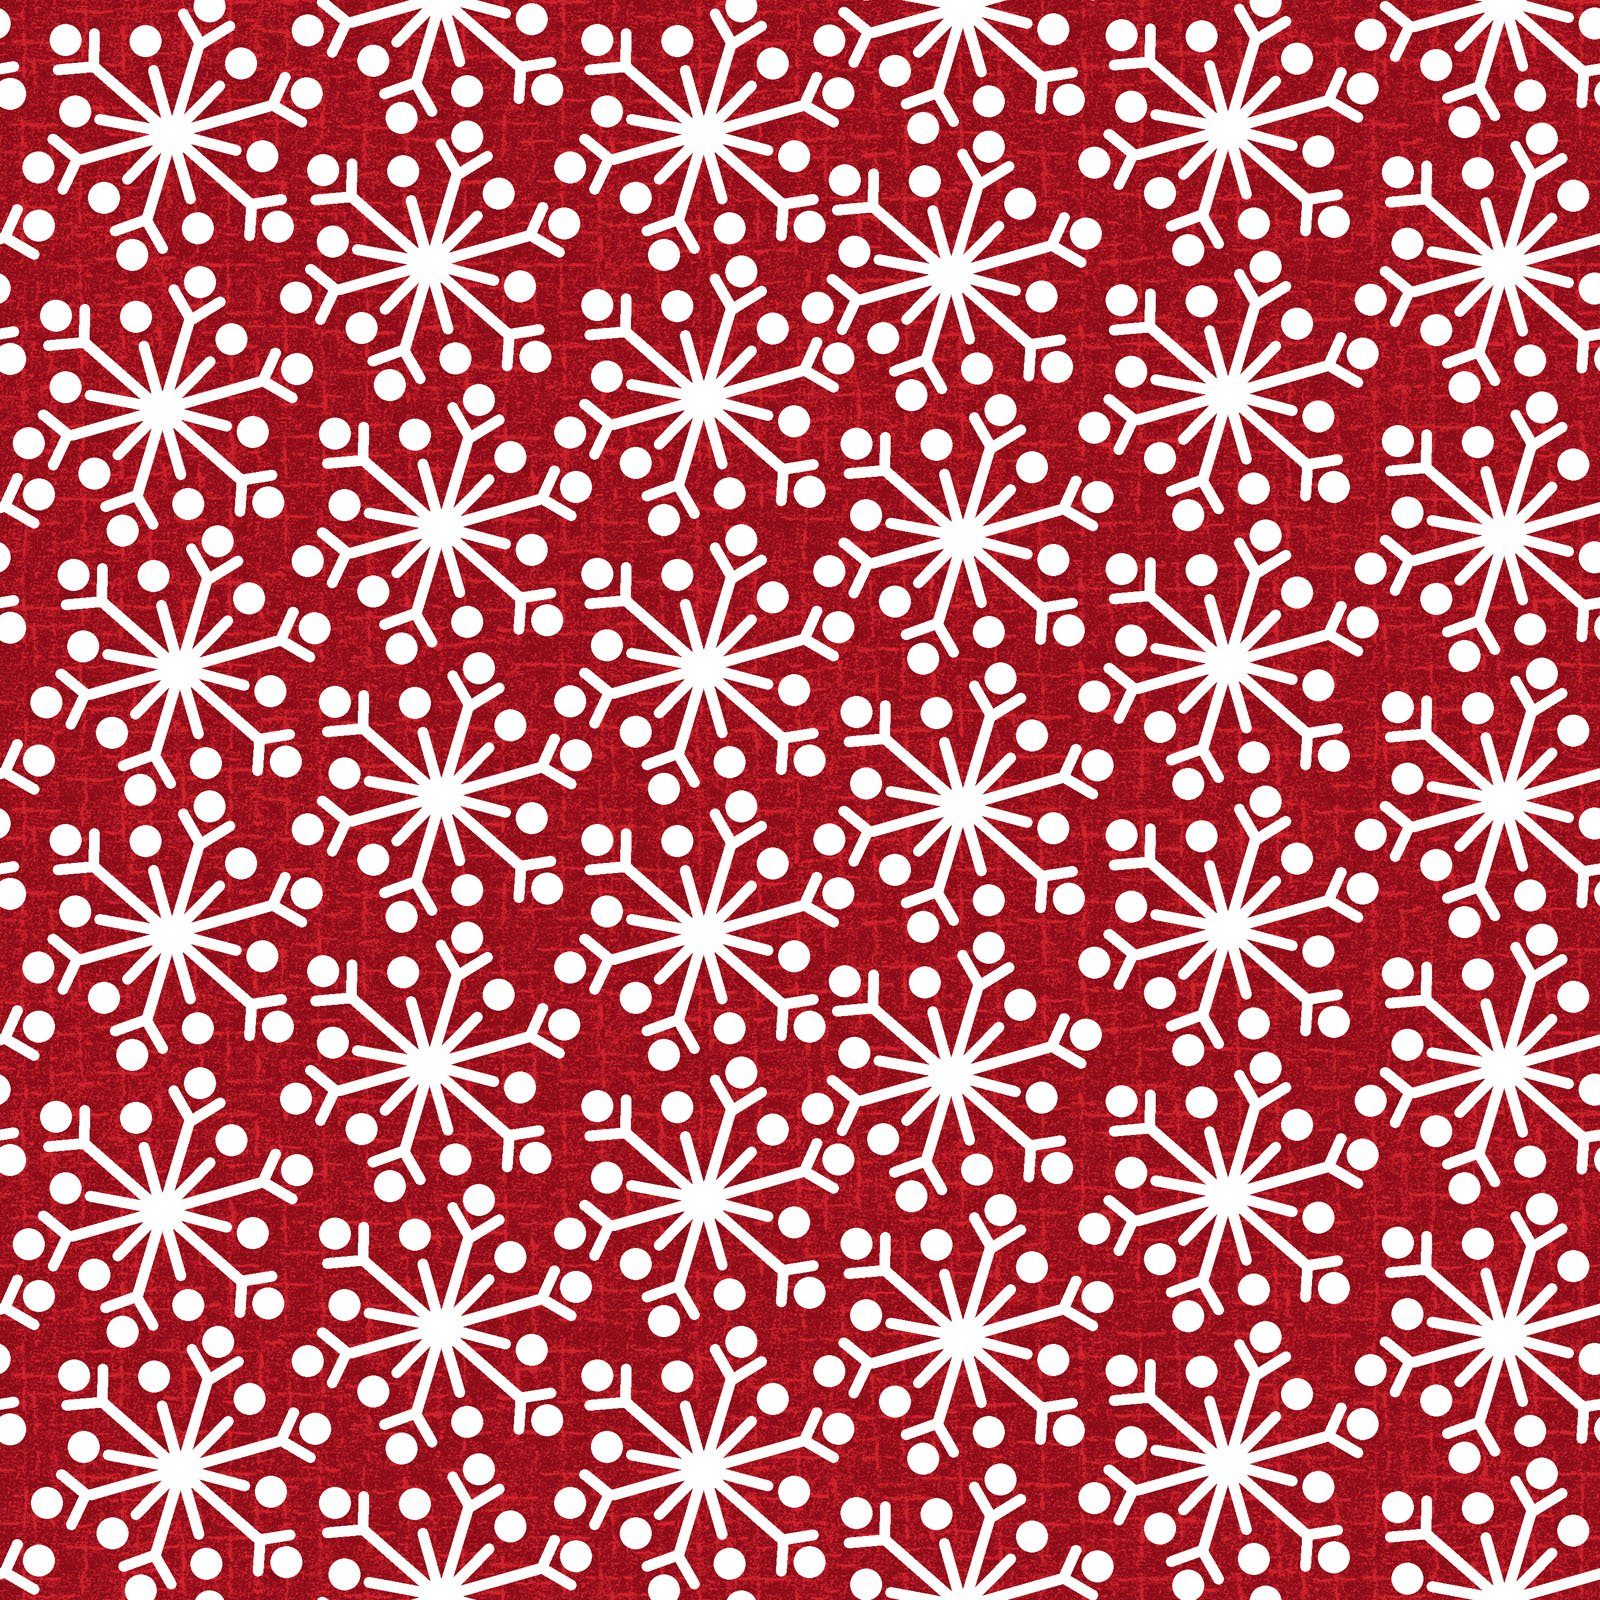 EESC-F9938 R - SNOWDAYS FLANNEL BY BONNIE SULLIVAN SNOWFLAKE RED - ARRIVING IN AUGUST 2021